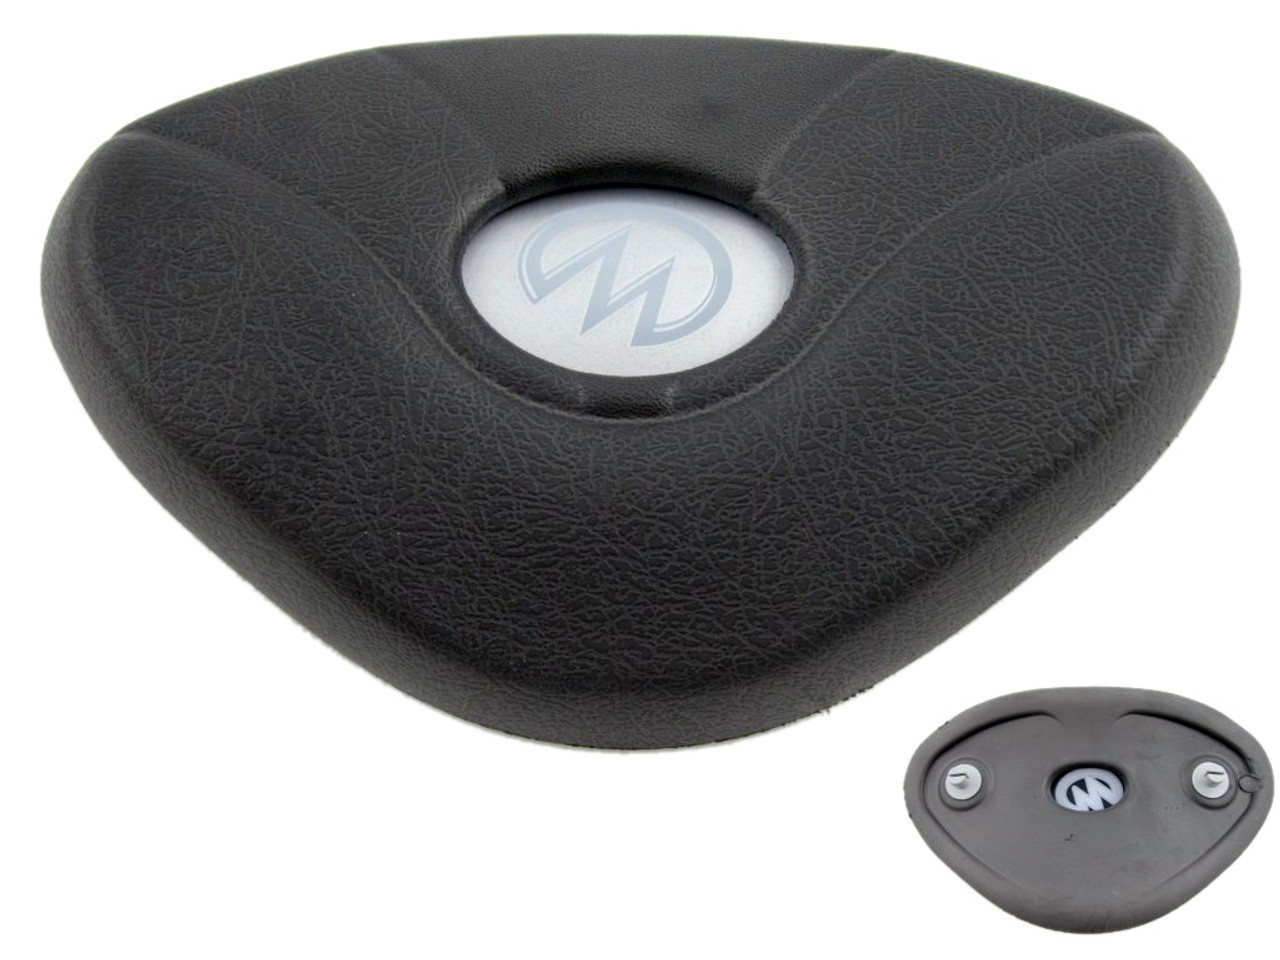 Master Spa - X540763 - MP Legend Pillow Charcoal w/Dome - Front View